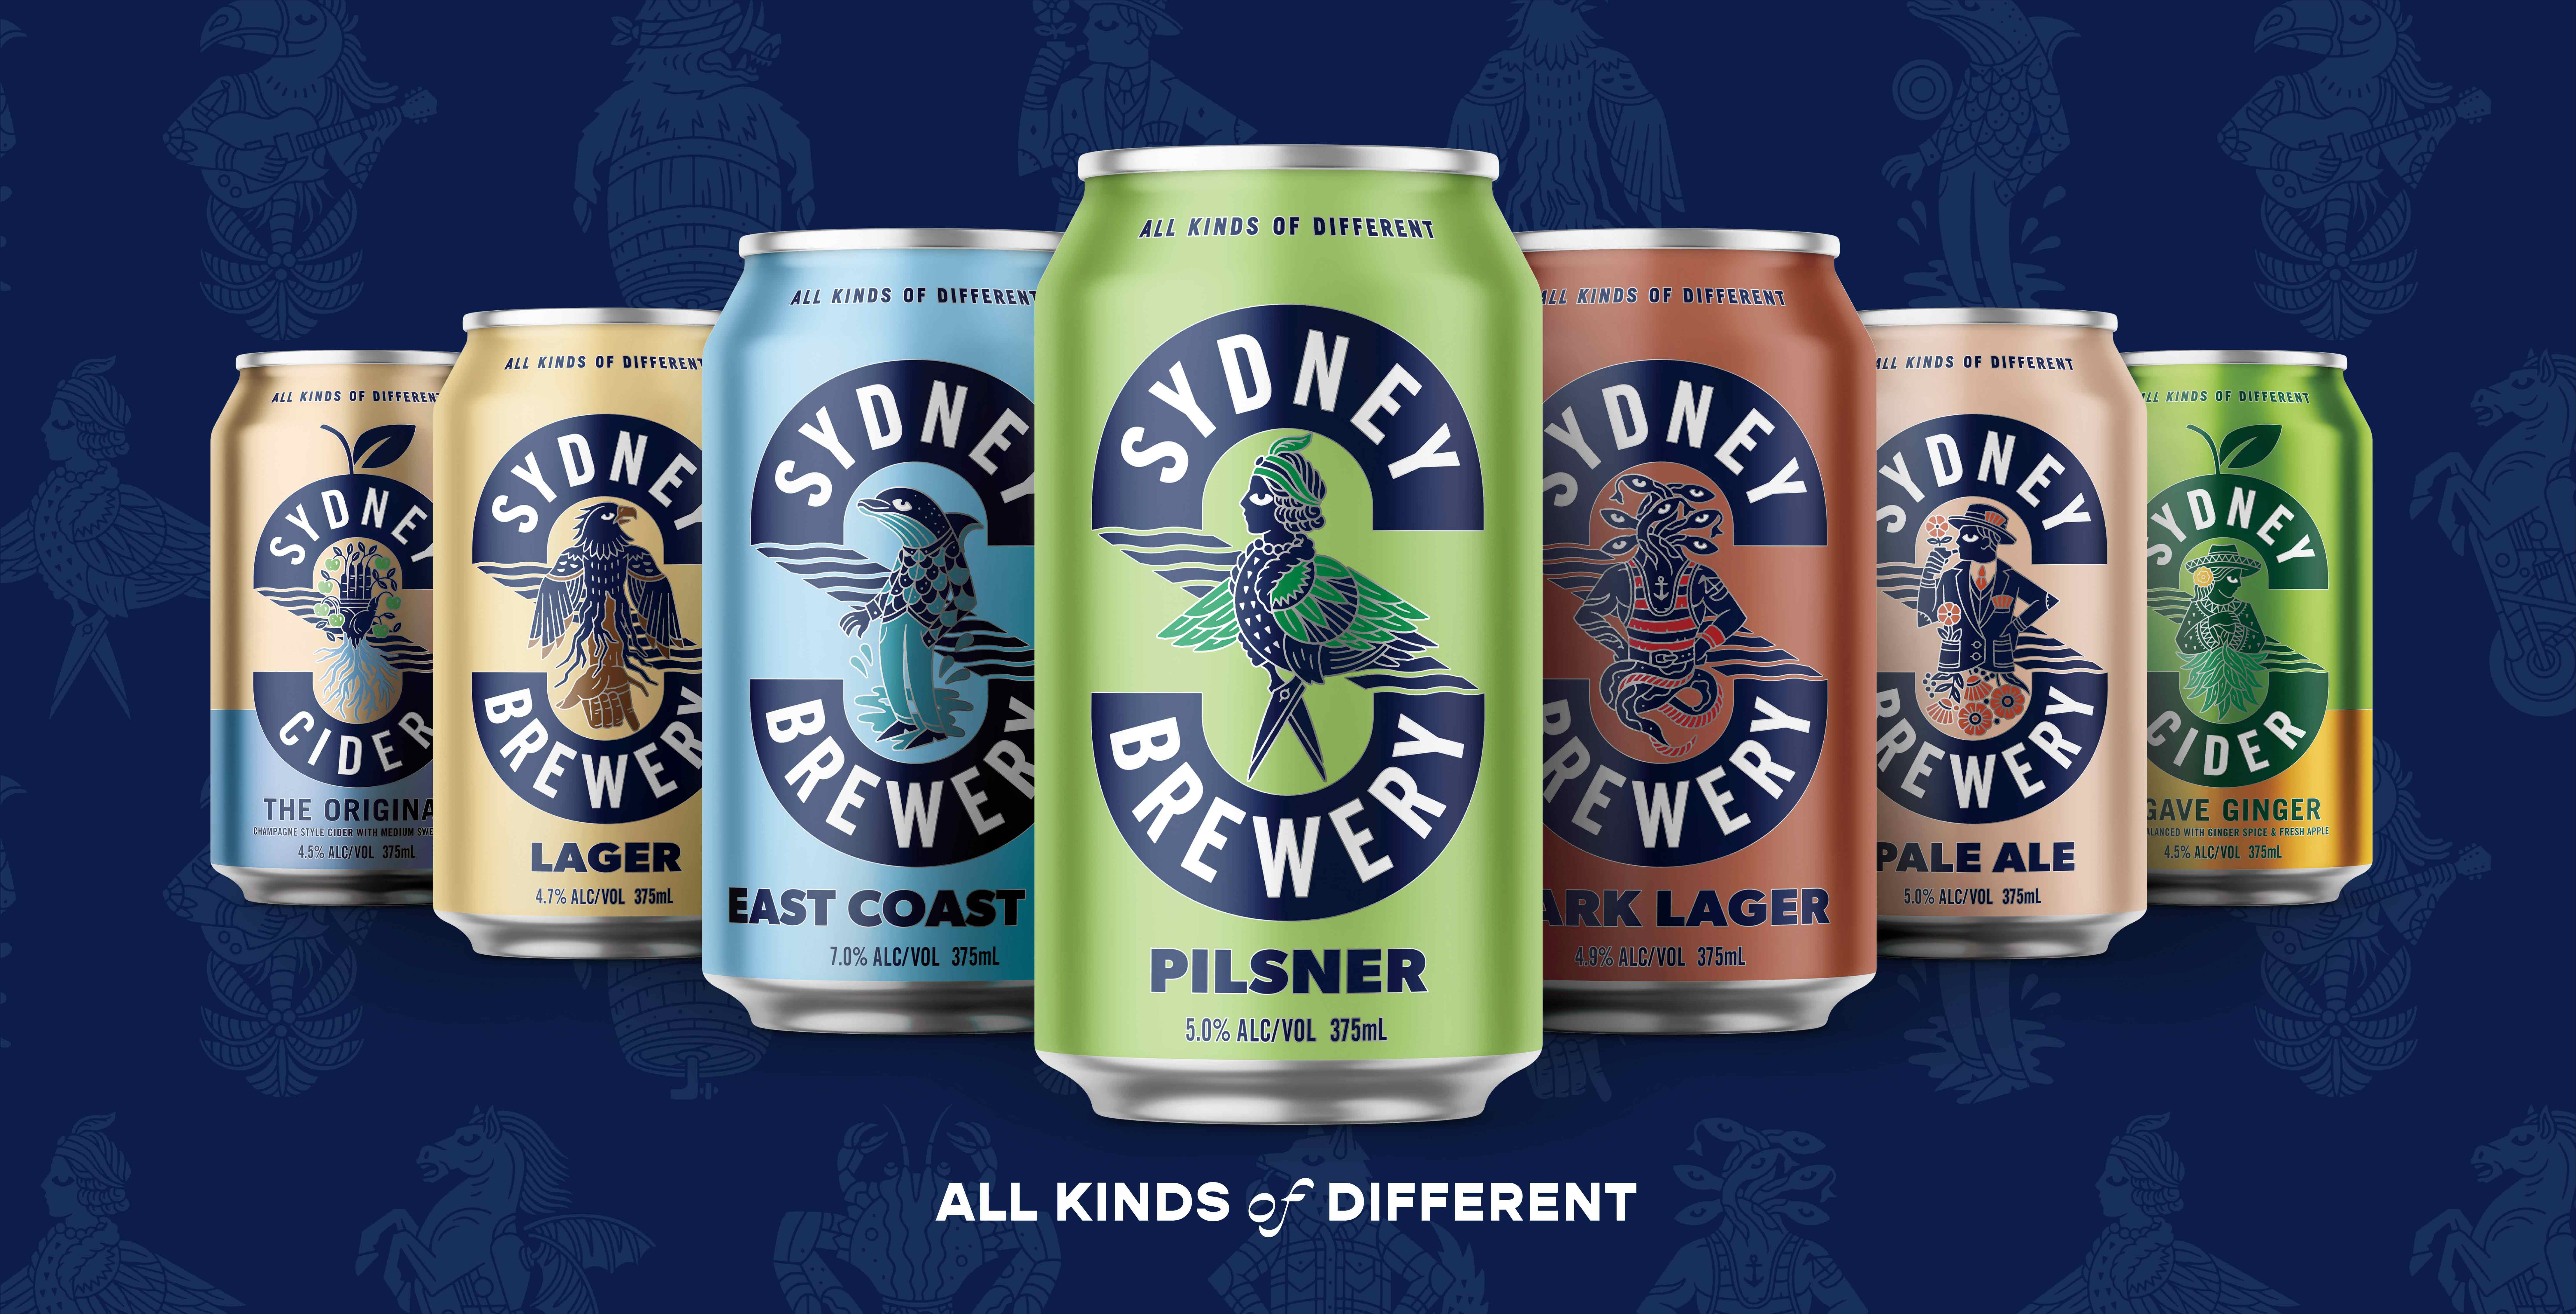 Sydney Brewery Revamped Identity and Packaging by Boldinc